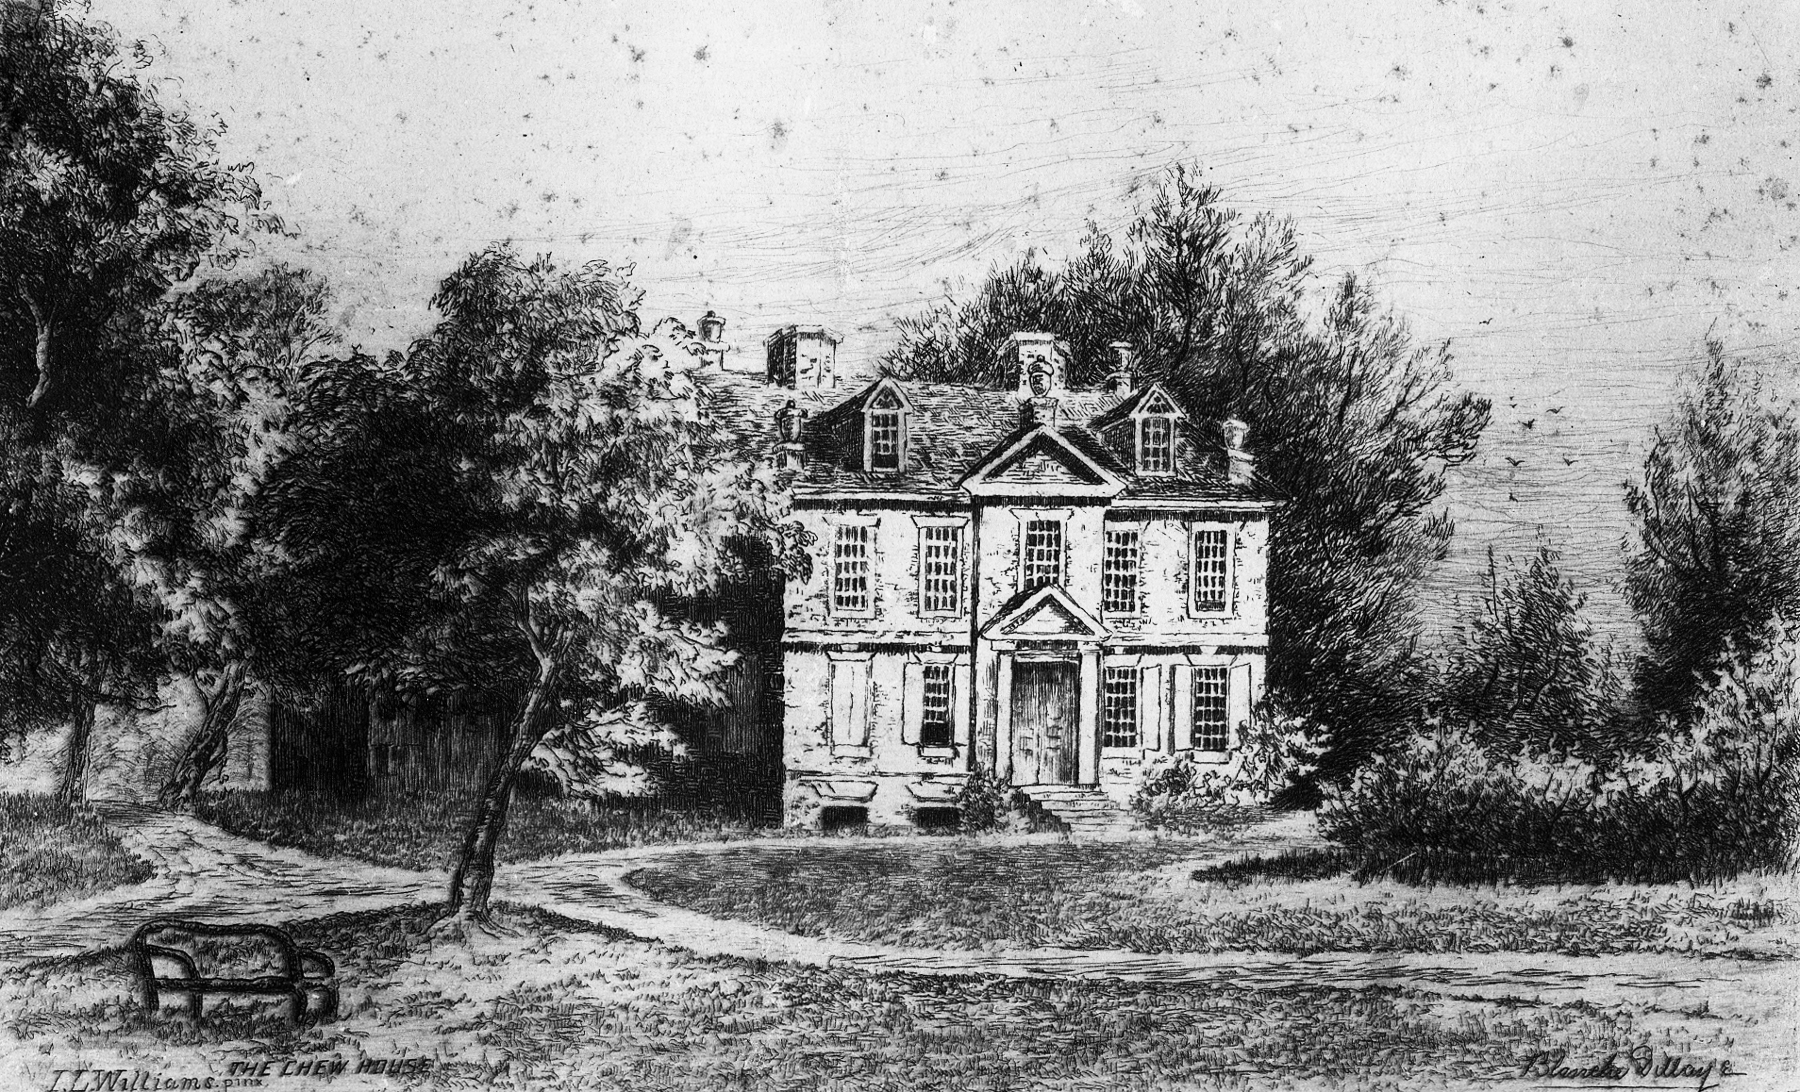 An old illustration of the Benjamin Chew House